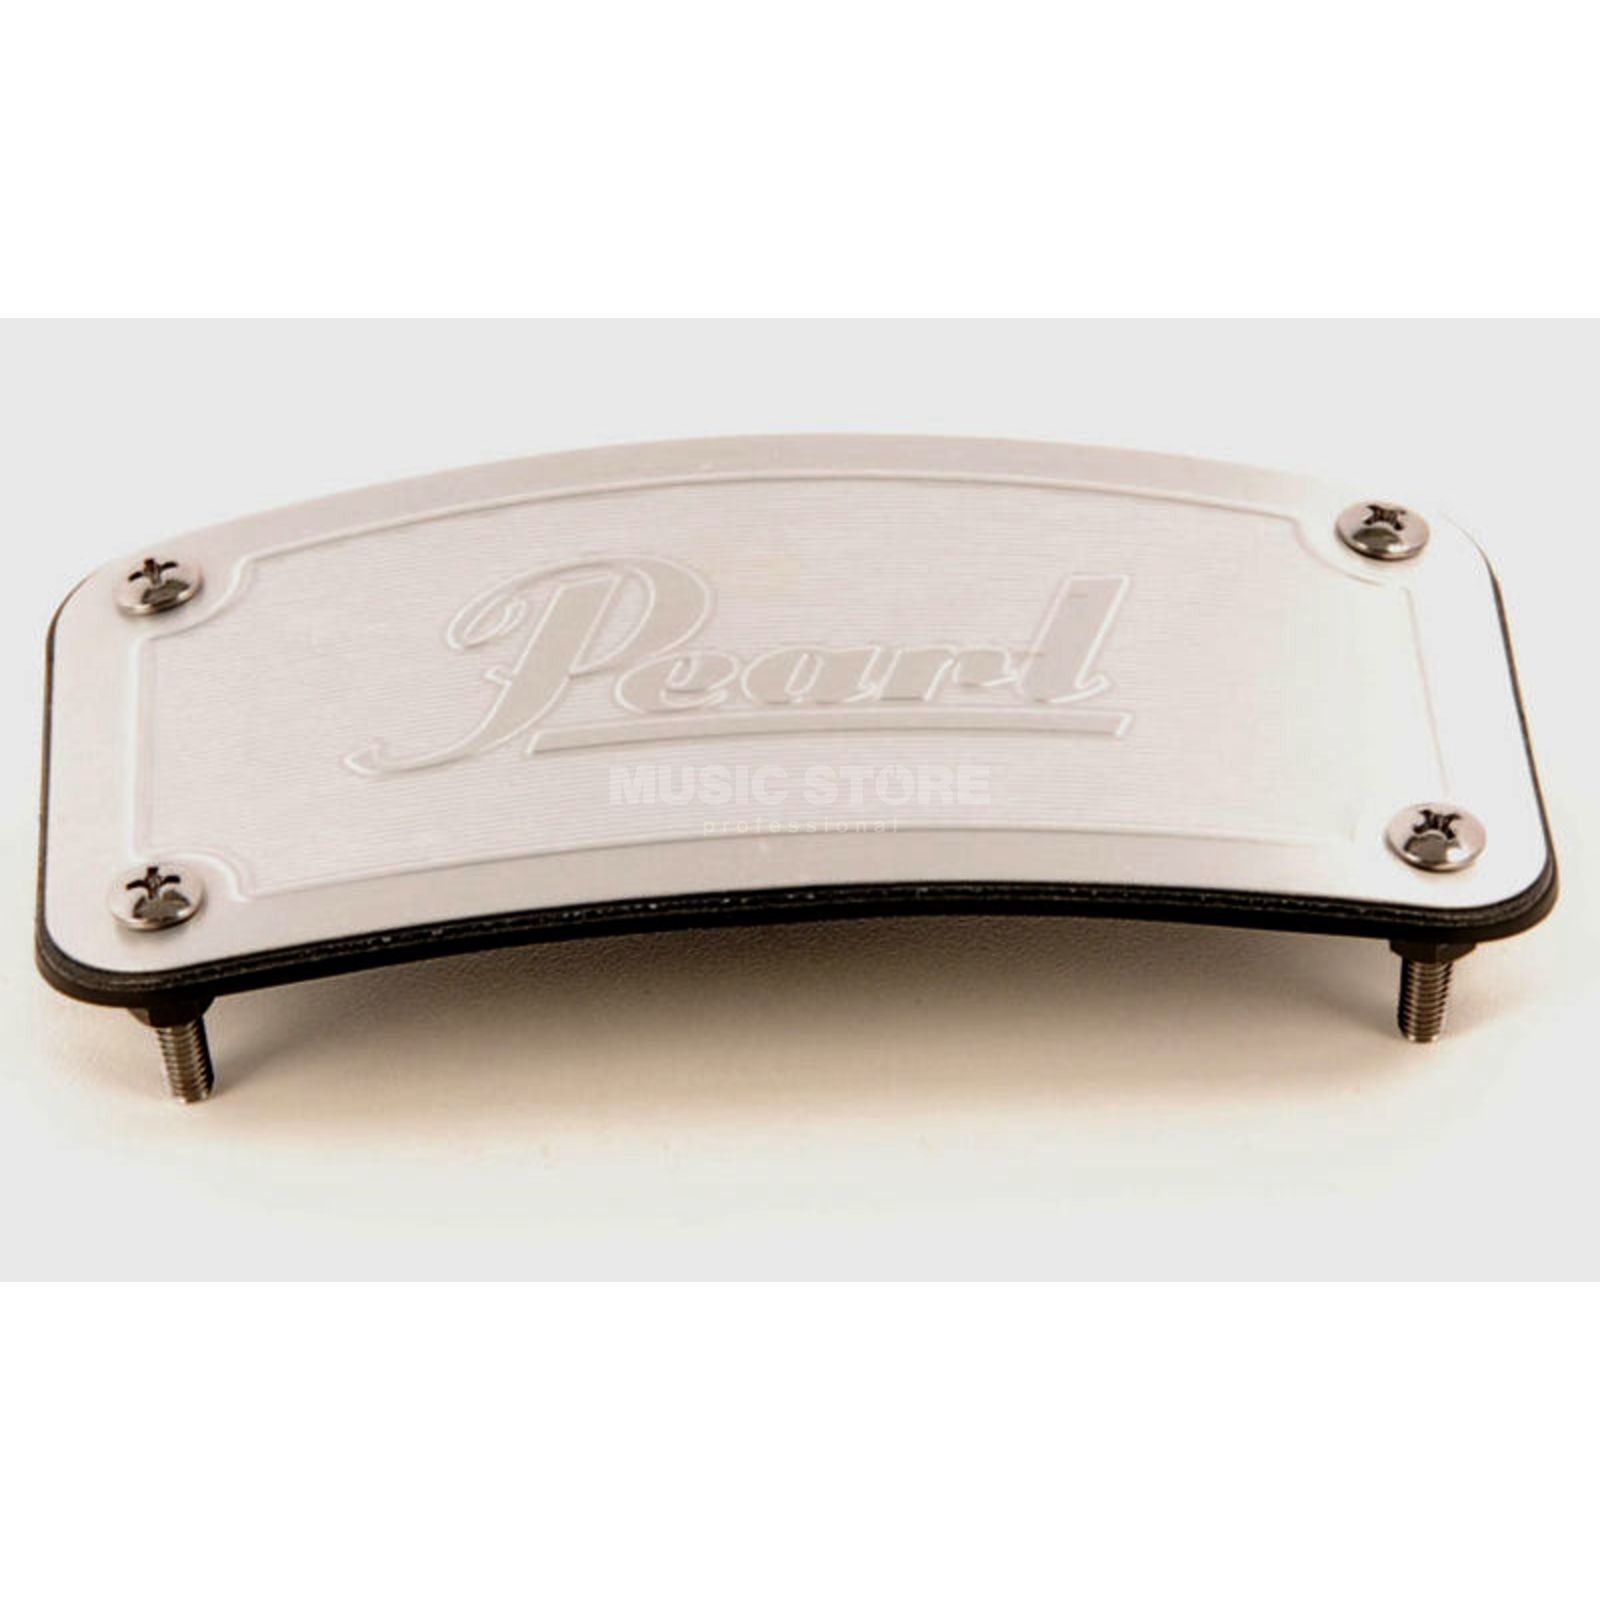 Pearl BBC-1 Masking Plate Cover for Bass Drum Rosette BB-3 Product Image